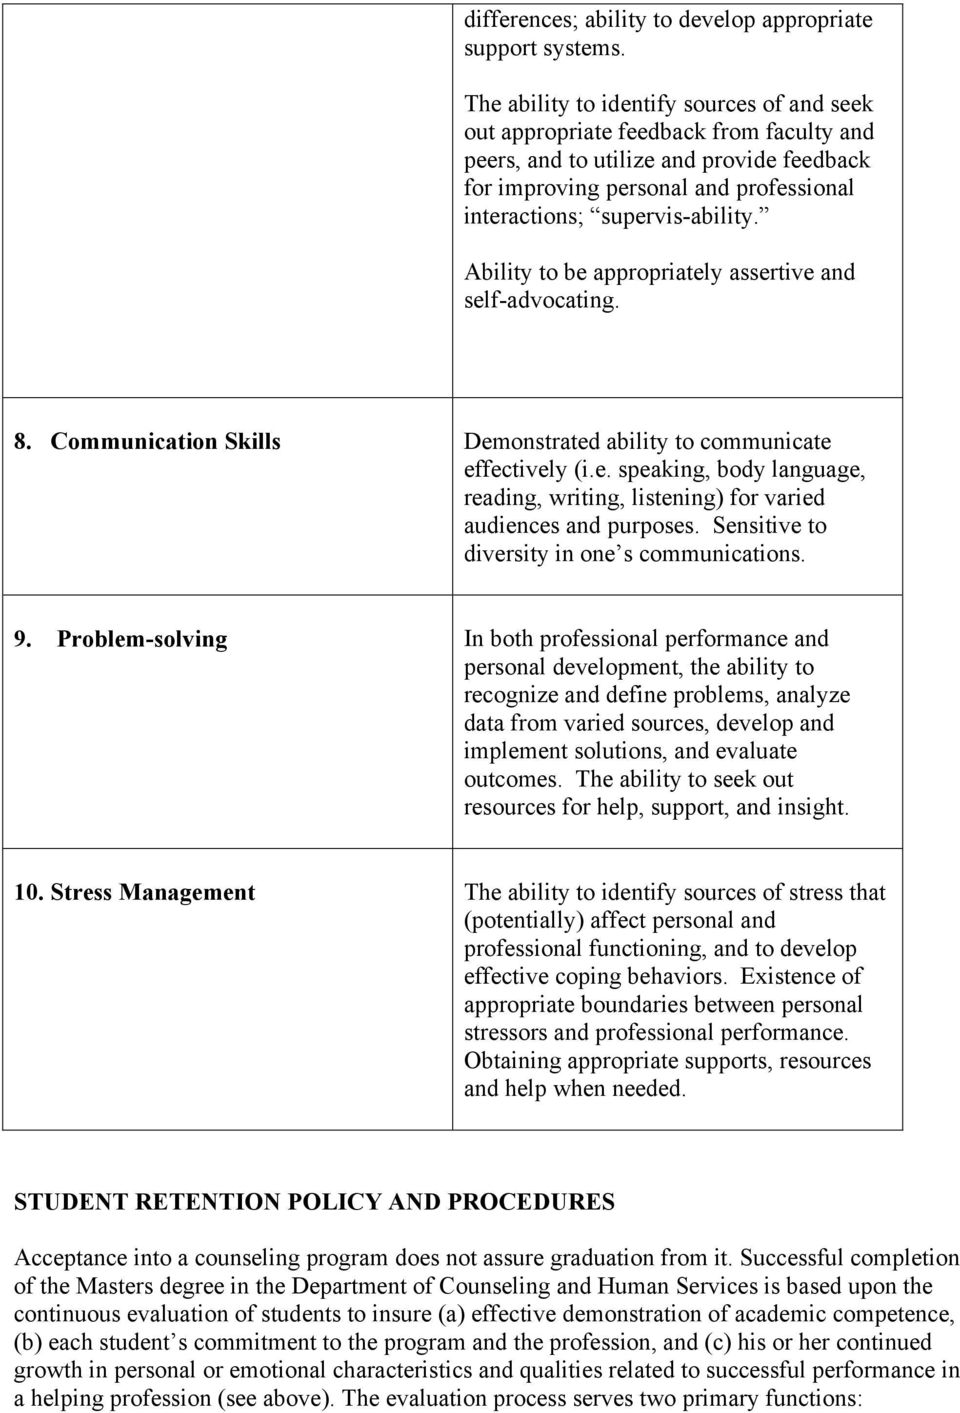 Ability to be appropriately assertive and self-advocating. 8. Communication Skills Demonstrated ability to communicate effectively (i.e. speaking, body language, reading, writing, listening) for varied audiences and purposes.